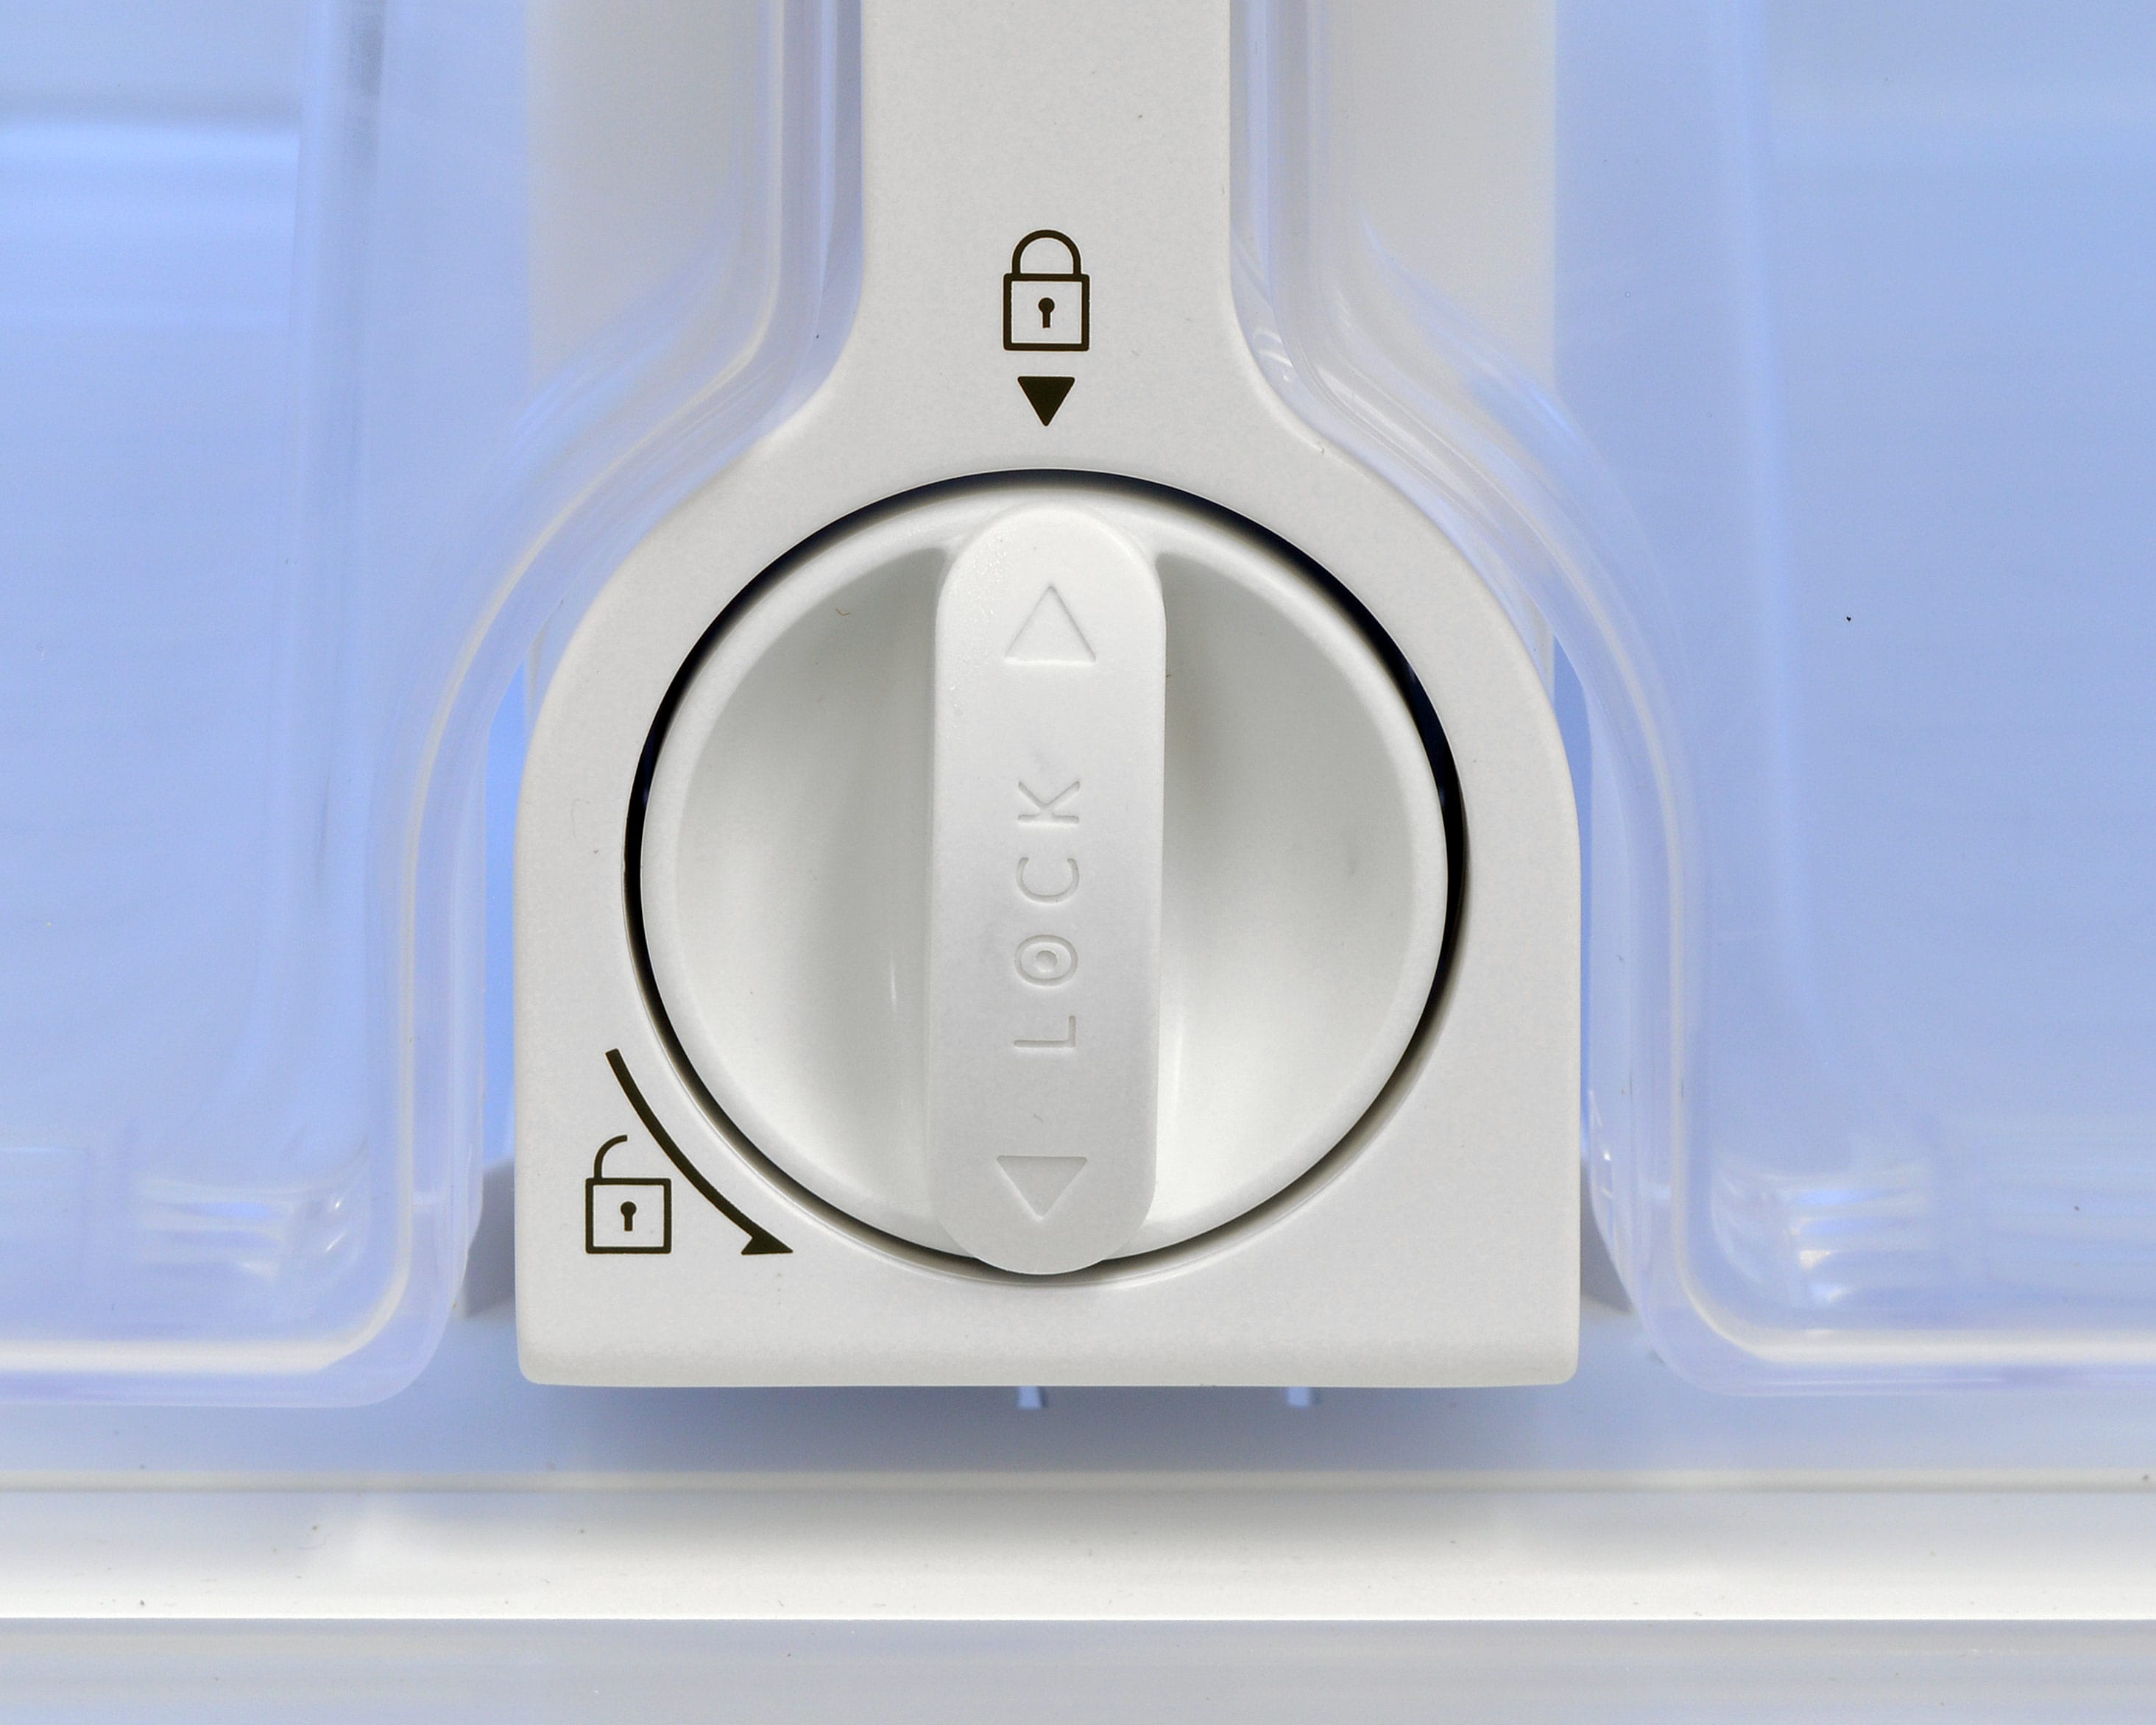 The Samsung RF260BEAESR's water filter is nestled in between the matching crisper drawers.